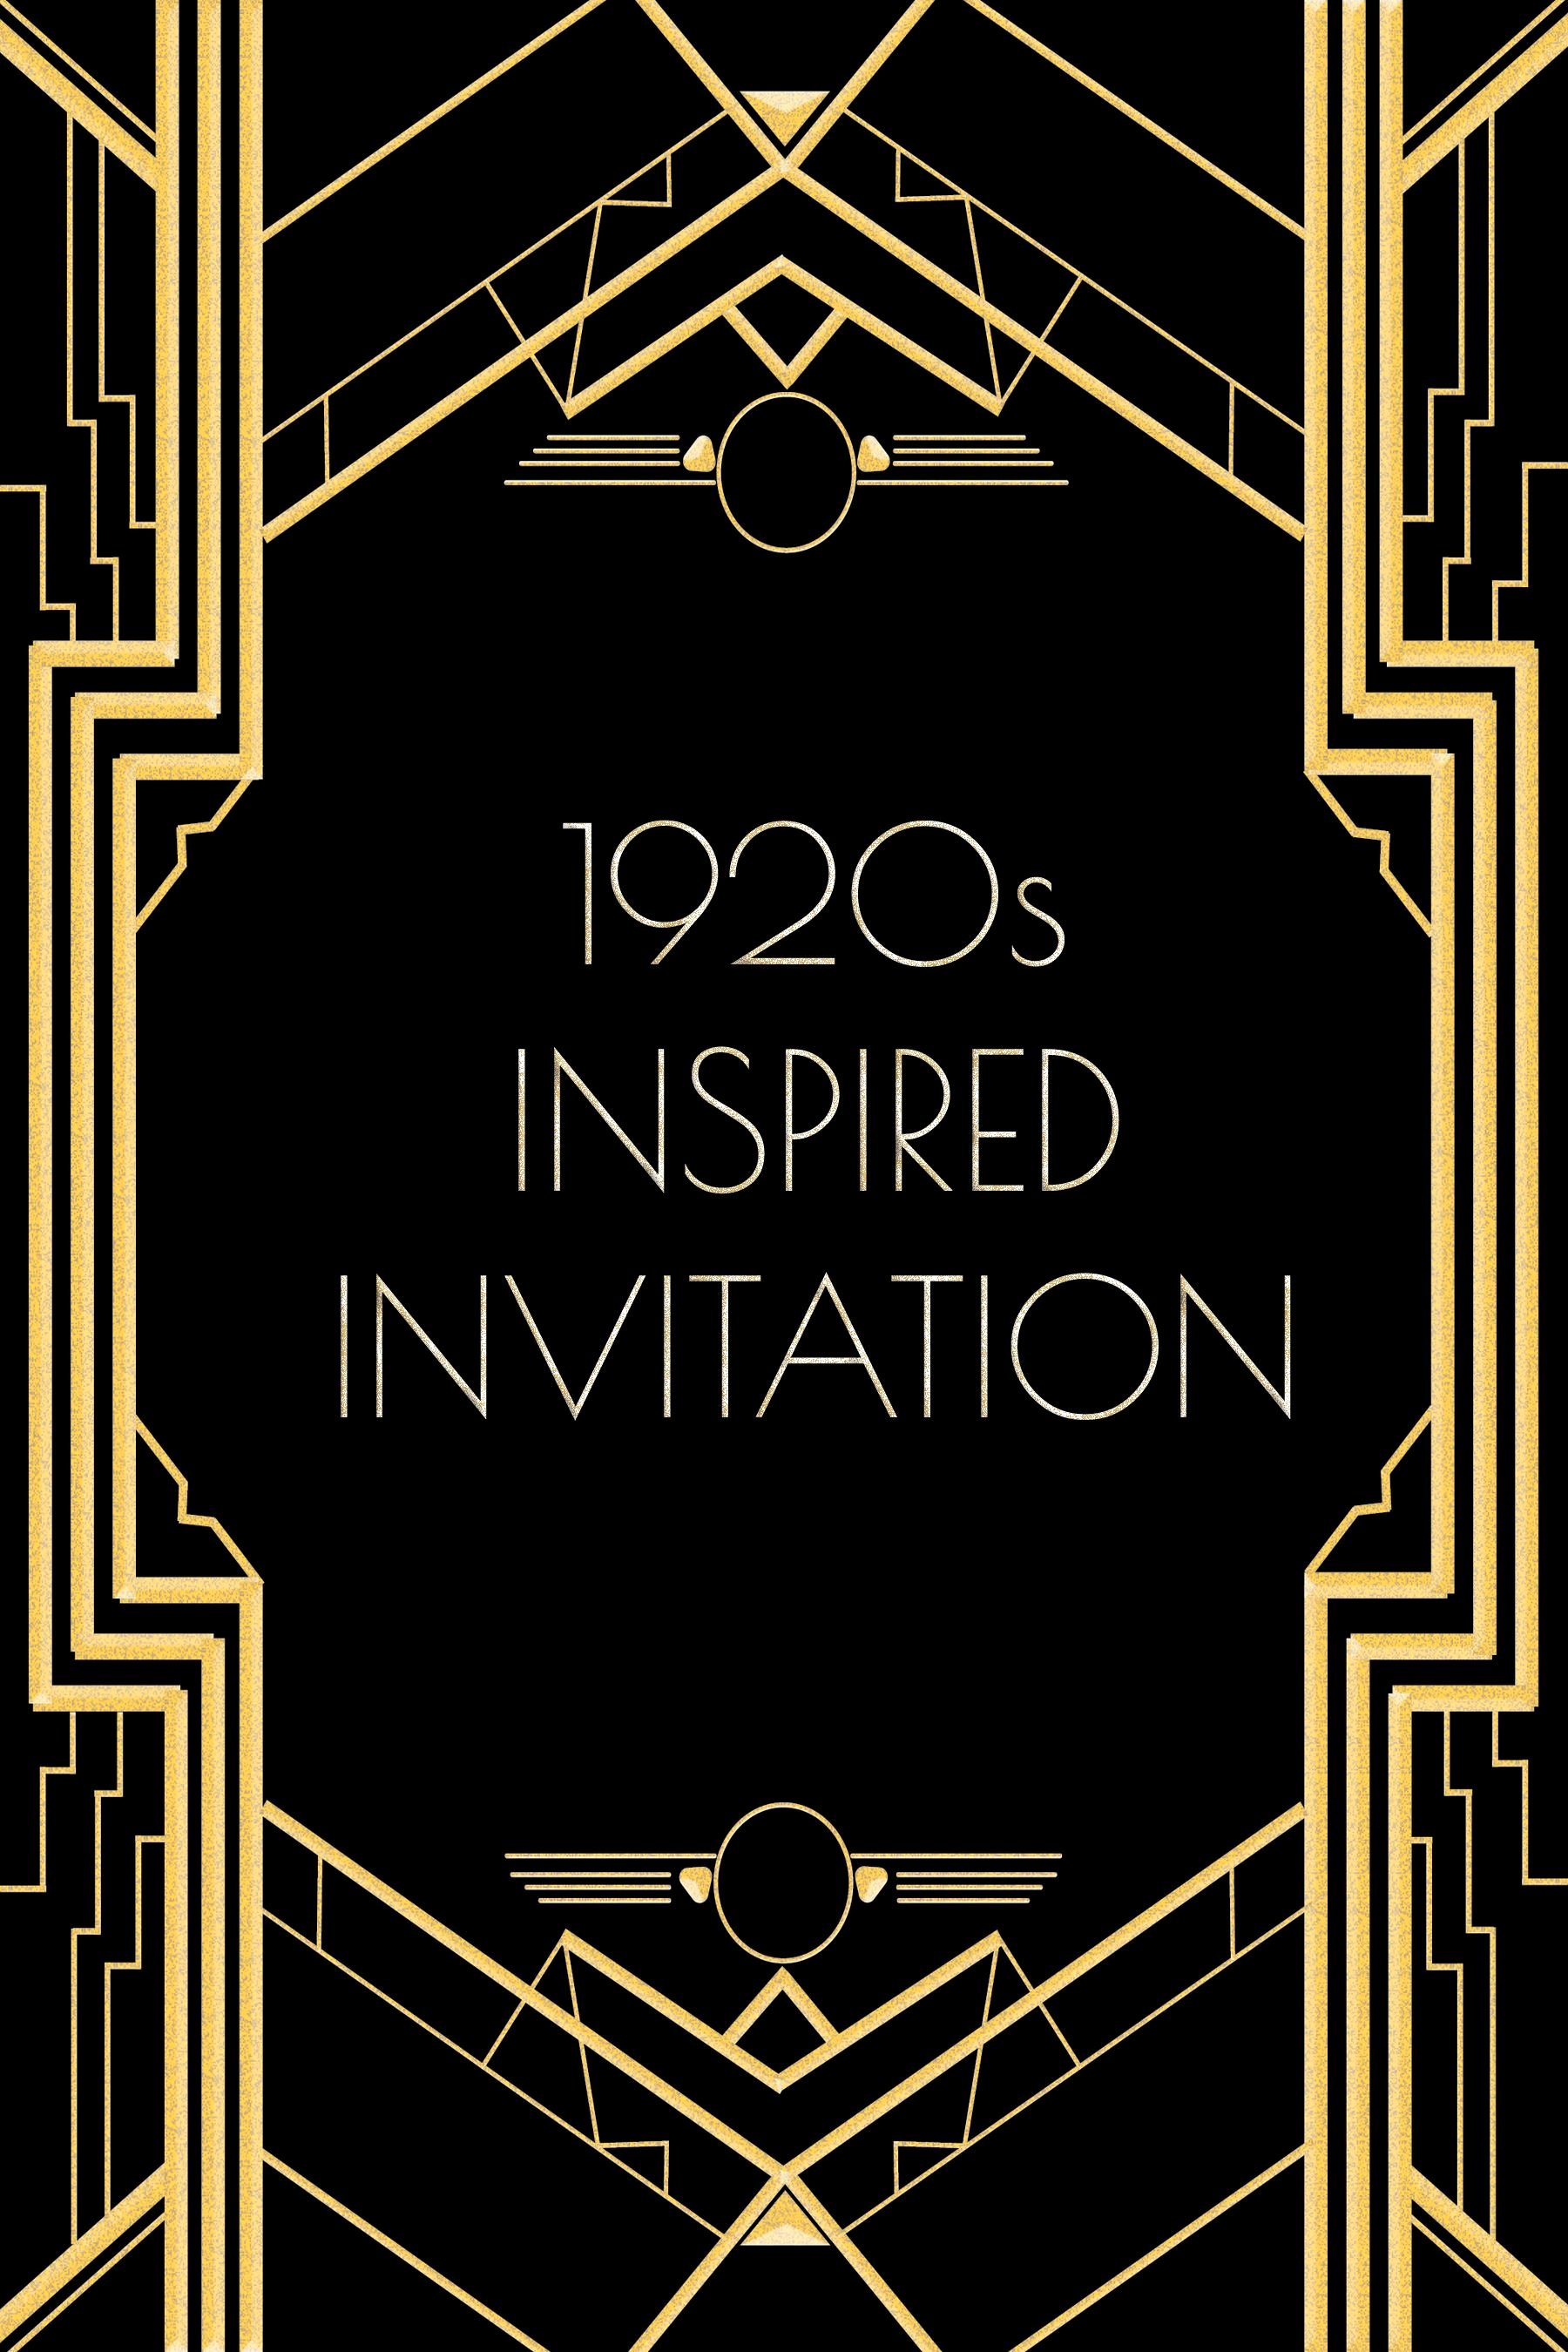 Great Gatsby Party Invitation Template Free Unique Use This 1920s Inspired Invitation Template for A Gatsby